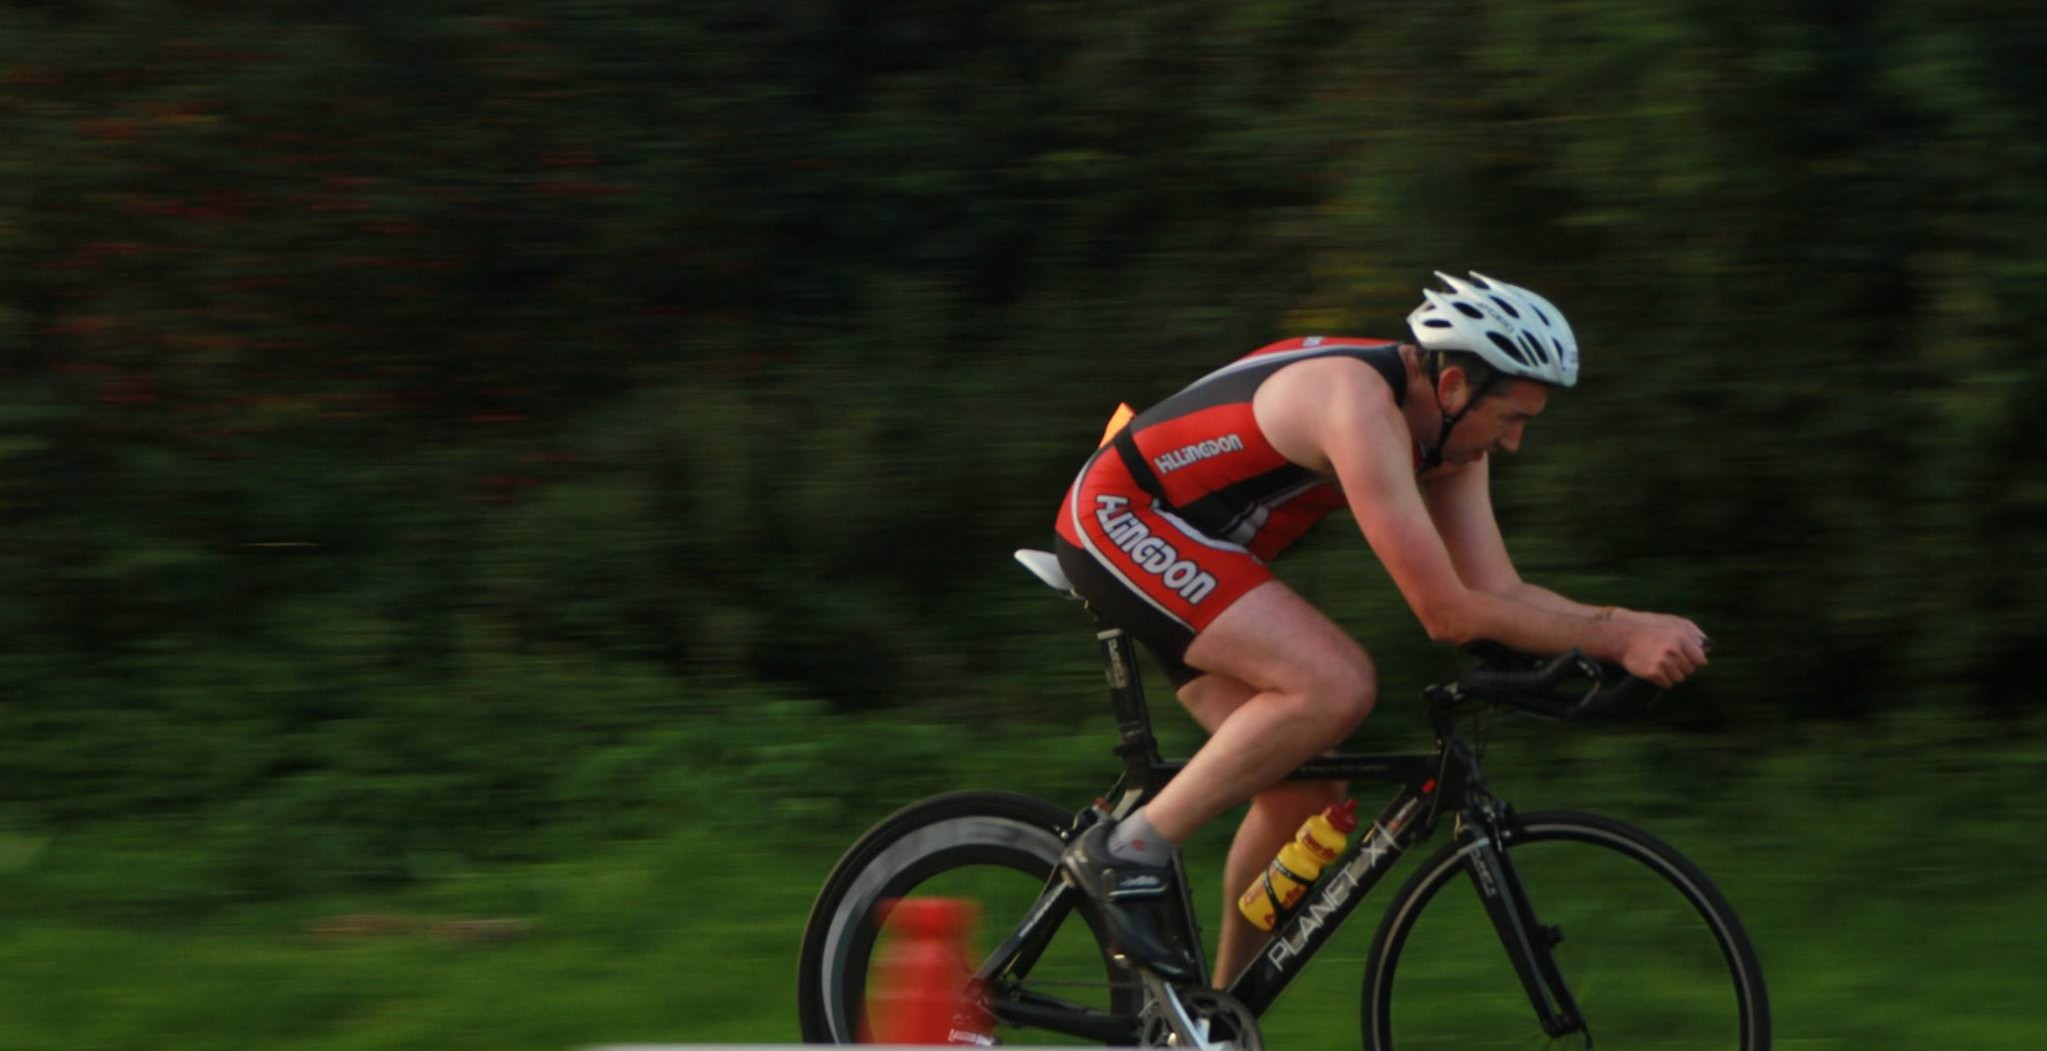 Spring Duathlon - Hillingdon Triathletes